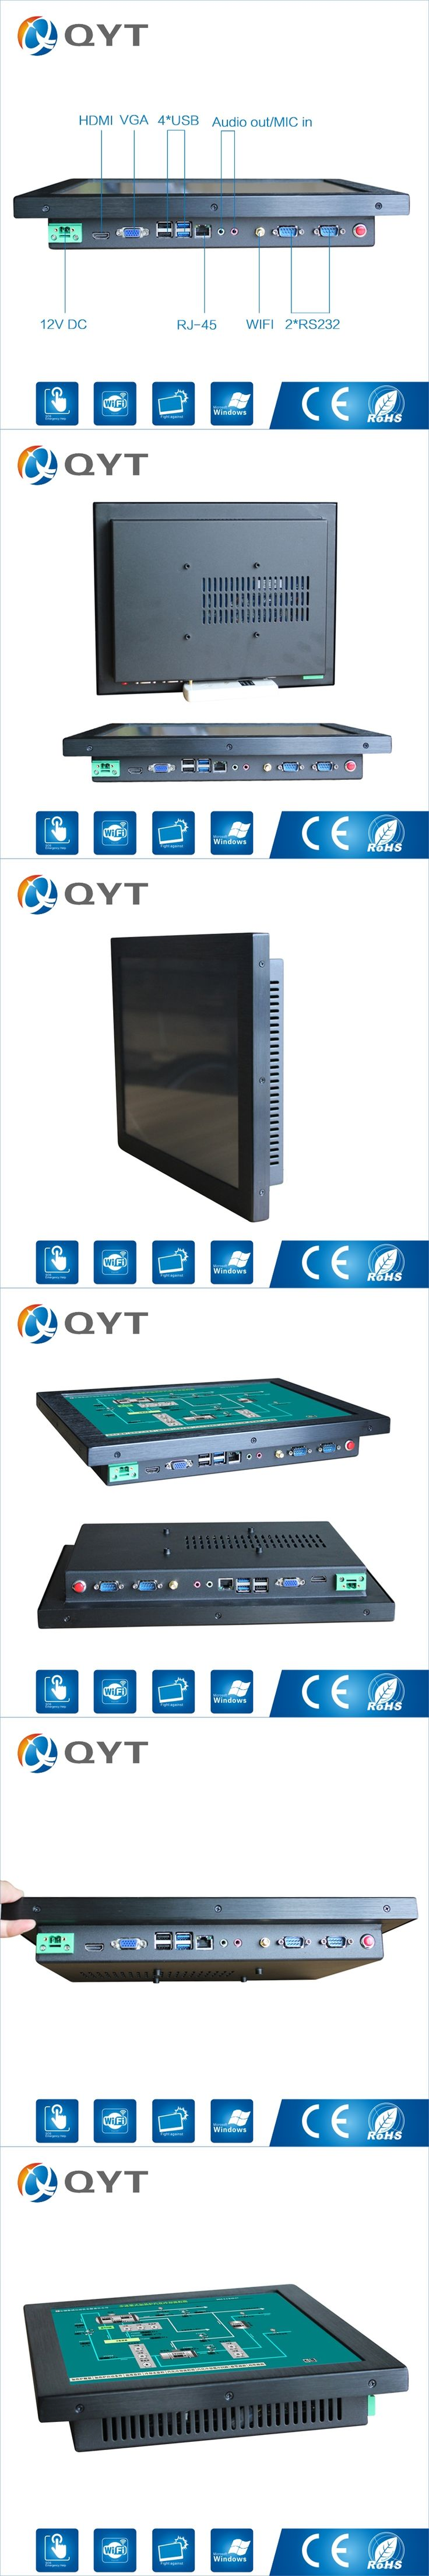 Indutrial Computer 15 Inch i3 6100U ultra thin pos system  Led Touch Screen pc All In One with 4*USB HDMI/2*RS232/RJ45/WIFI